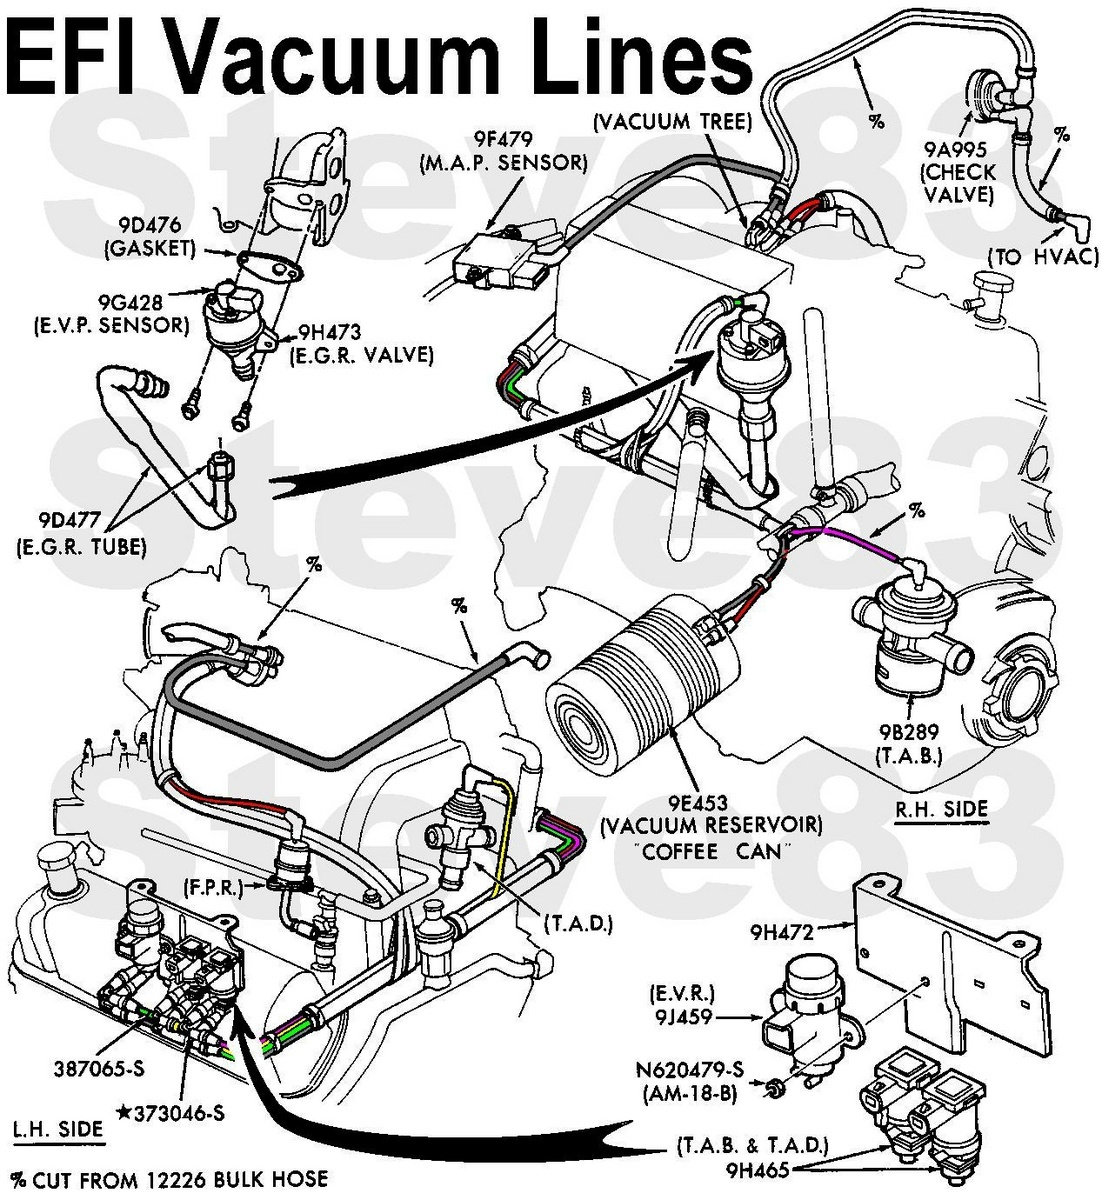 1990 Ford F 150 5 0 Liter Engine Diagram Archive Of Automotive 4 Questions Is There A For Vacuum Hoses On Rh Cargurus Com